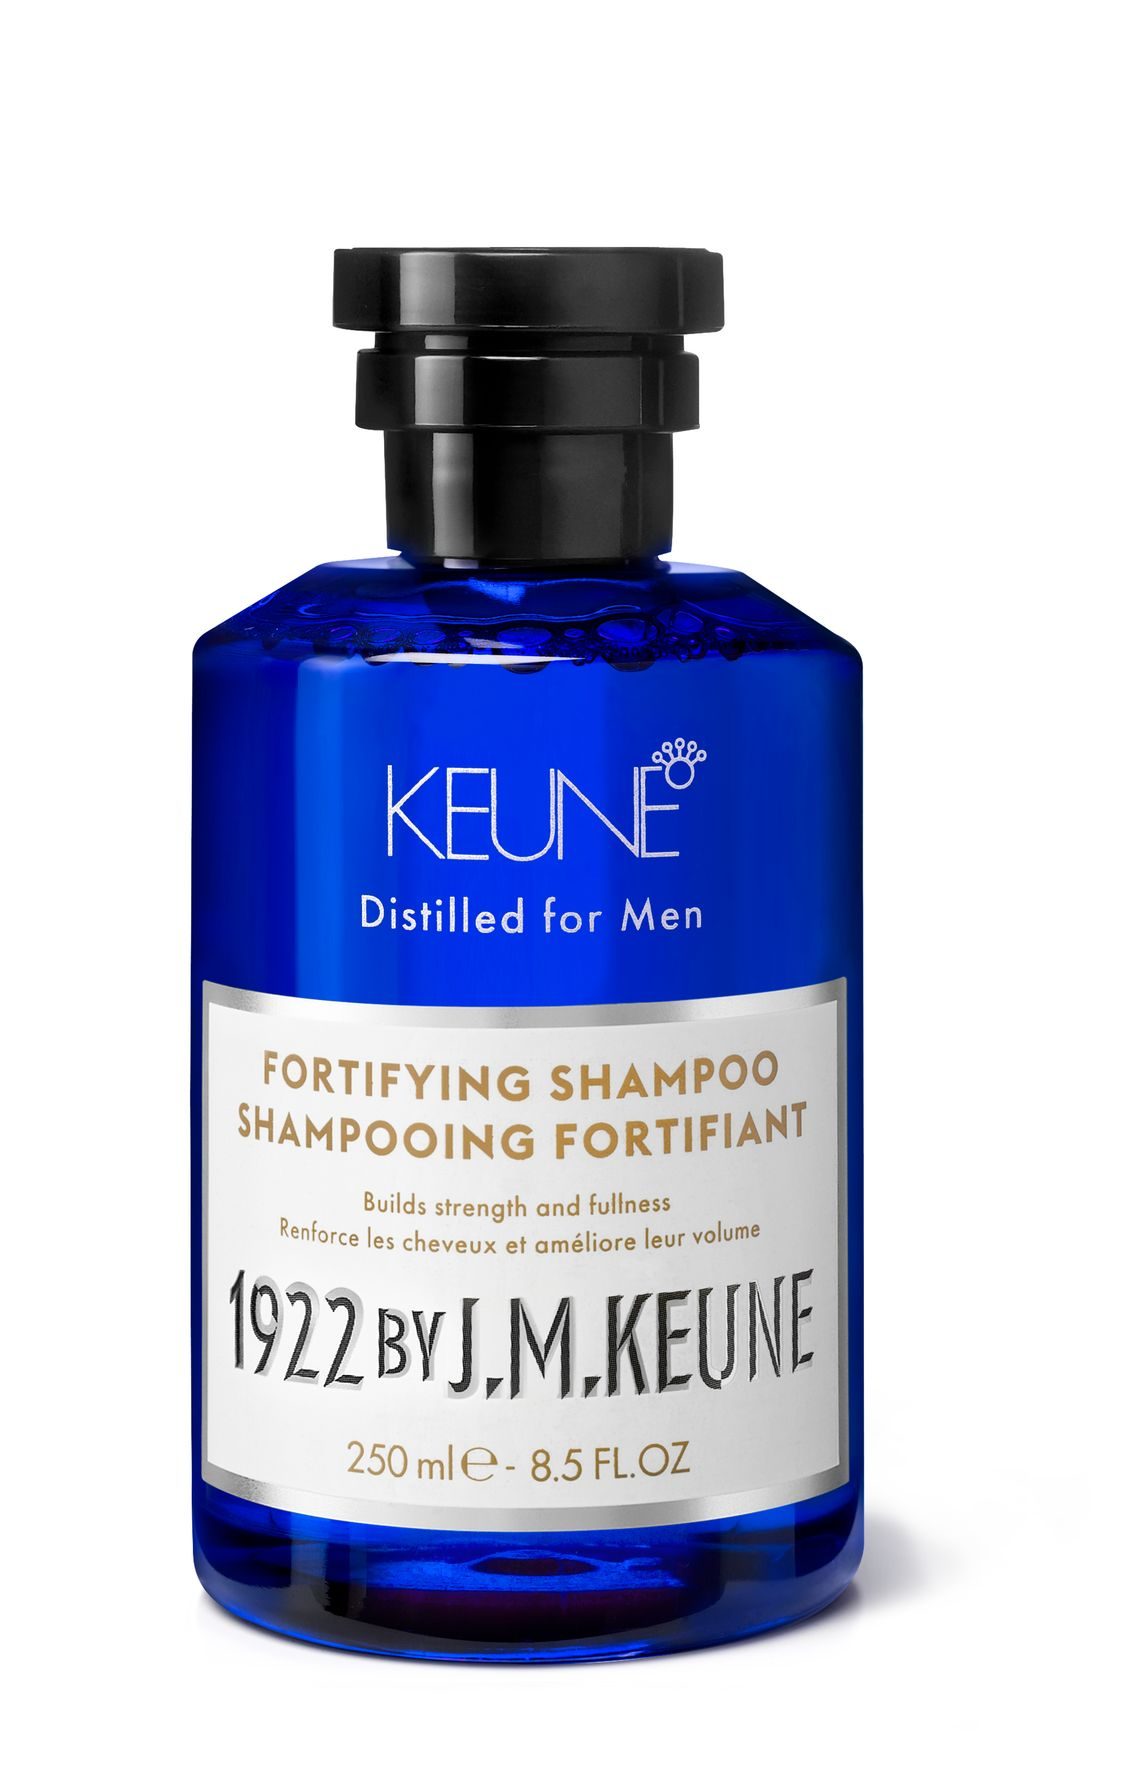 1922 by J. M. Keune Fortifying - Shampoo Antiqueda 250ml